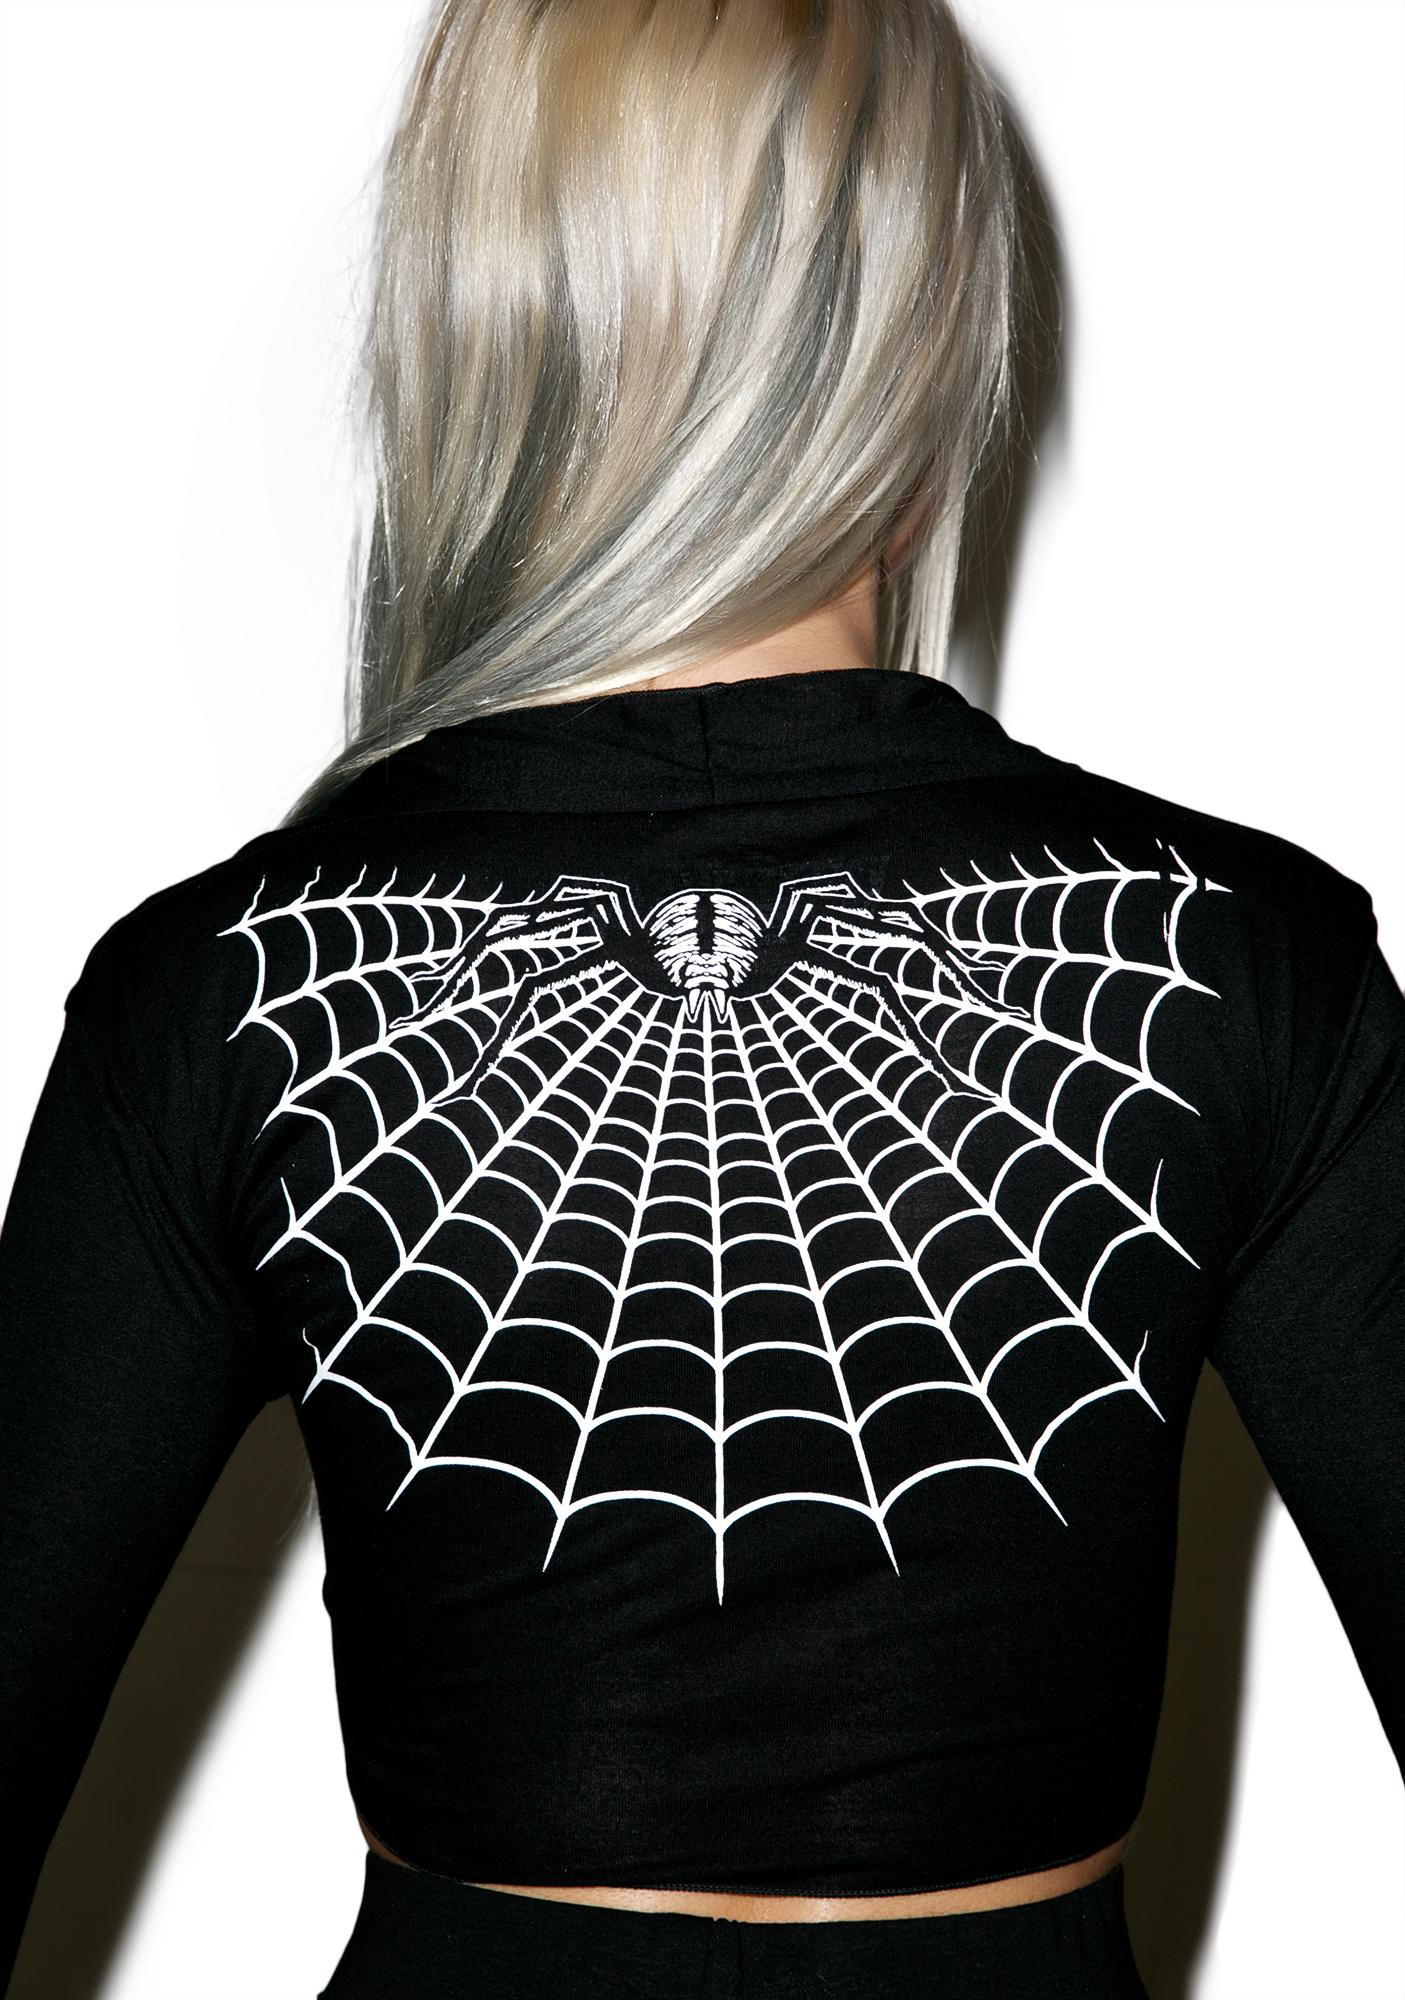 Kreepsville 666 Spider Webbed Tie Top